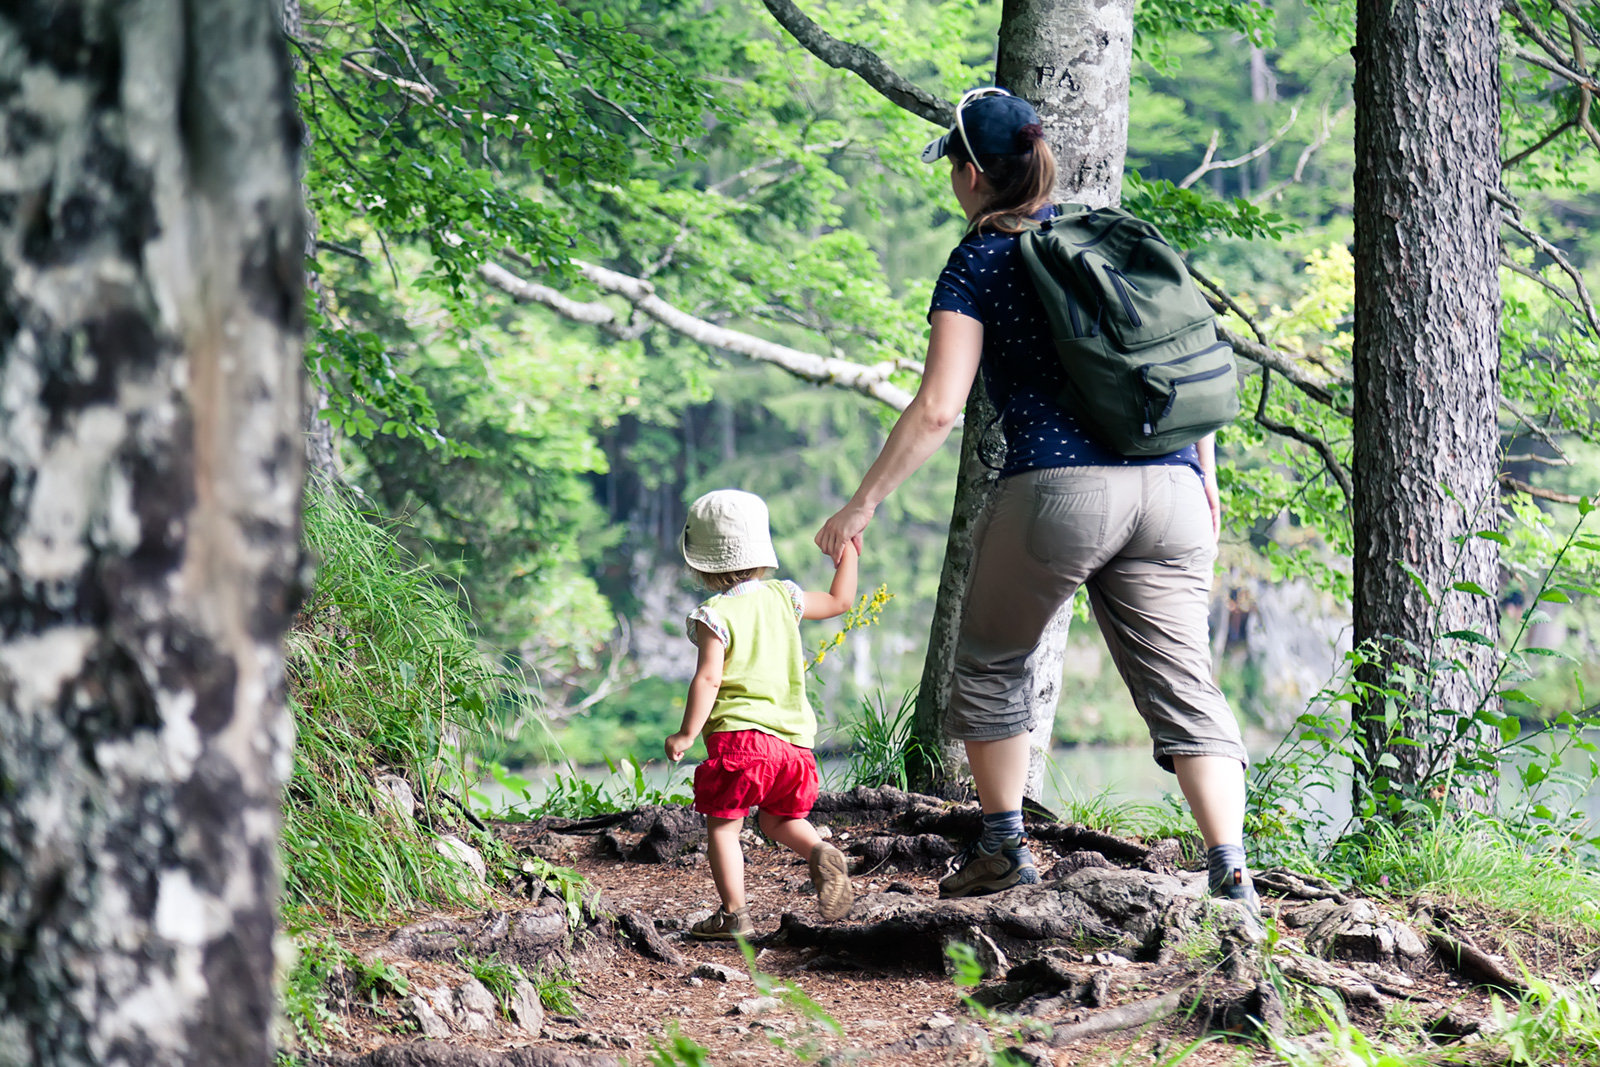 Hiking in the woods is one of the many activities you can pursue in the region.